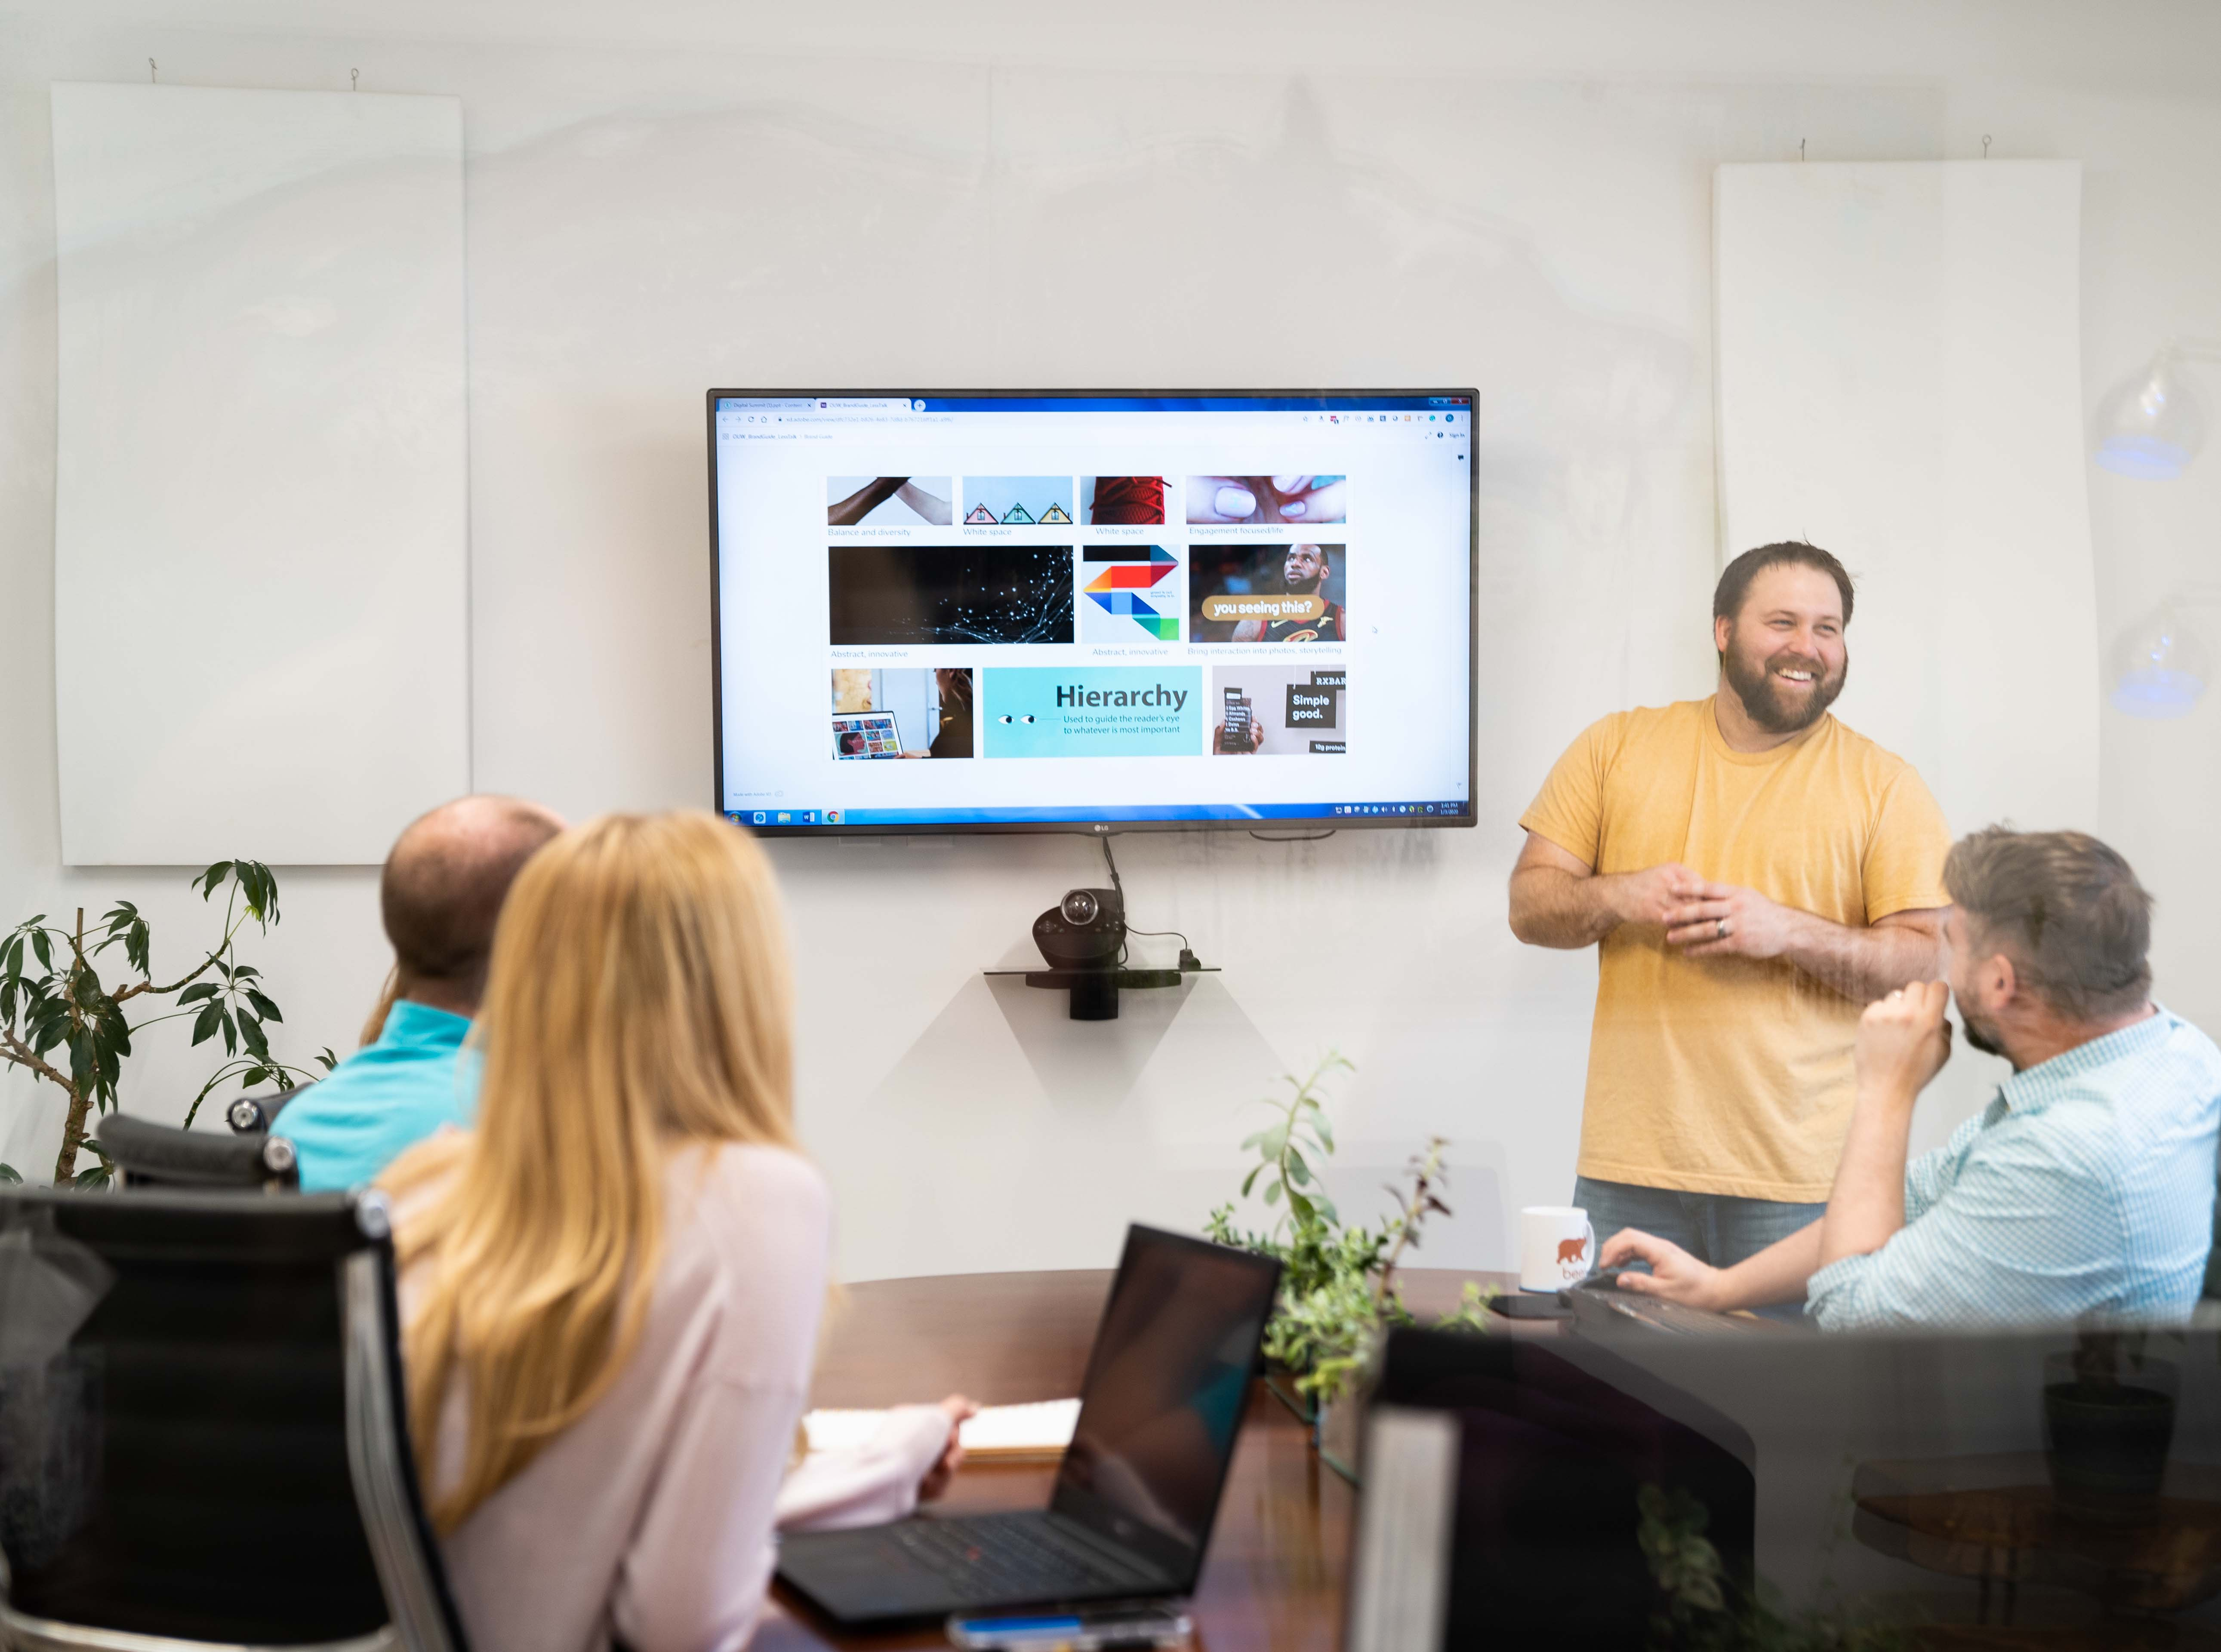 Oneupweb designer presents slideshow about information hierarchy on higher education websites